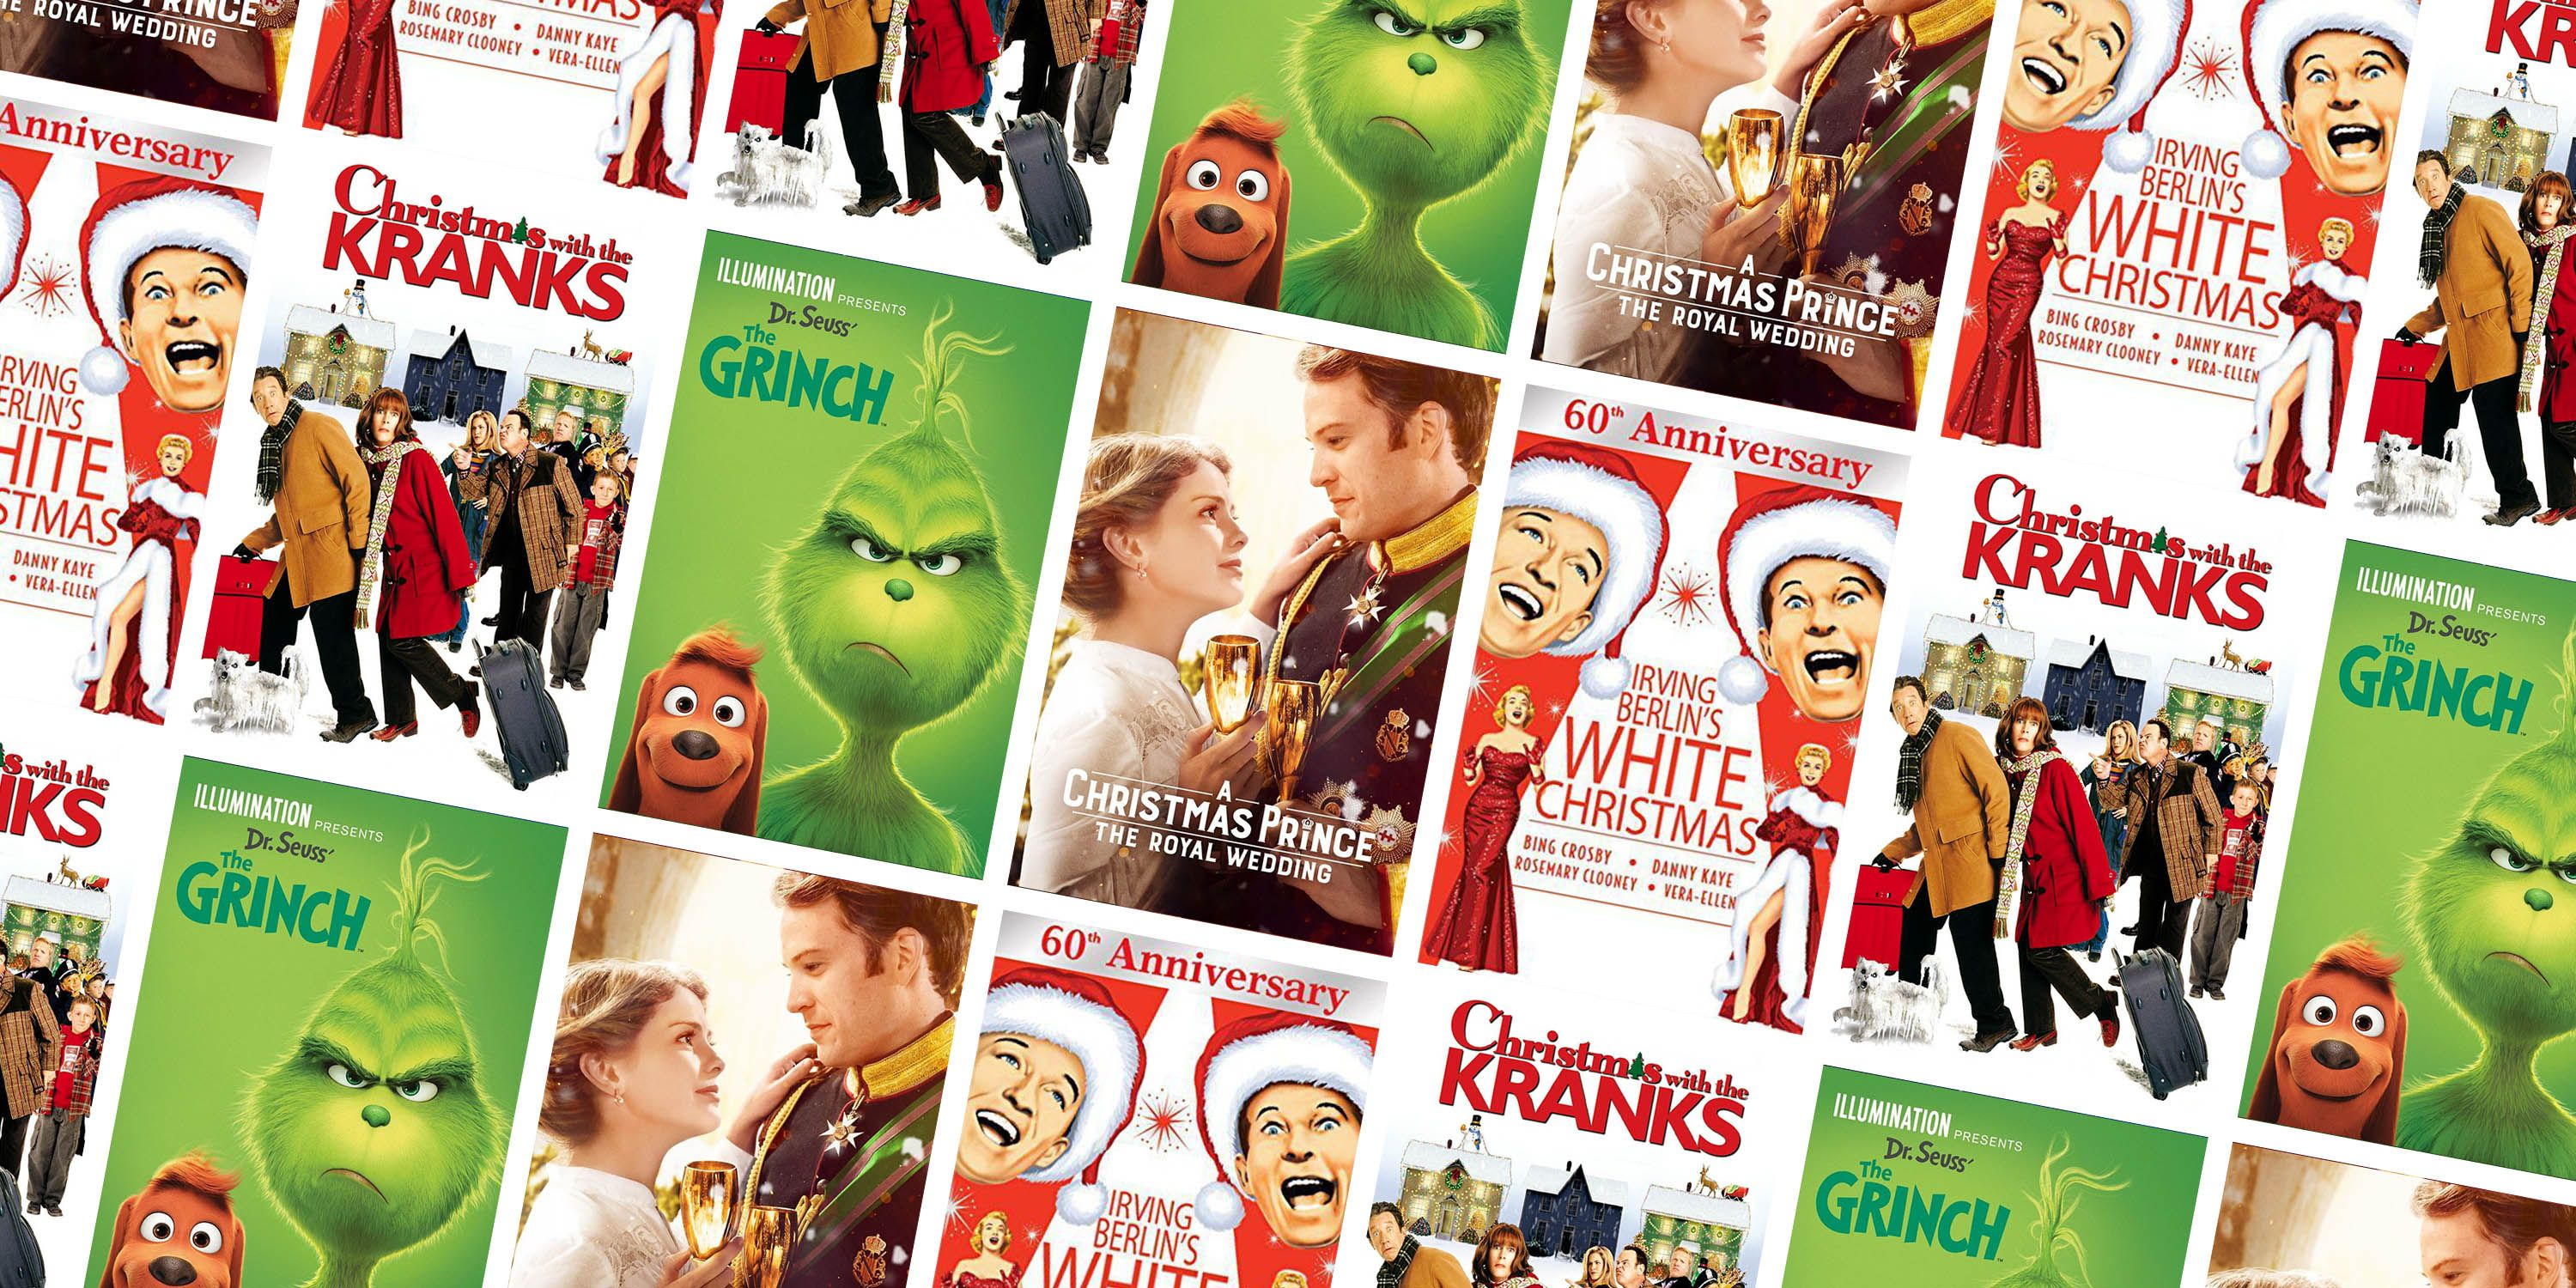 45 Best Christmas Movies on Netflix - Best Holiday Movies to